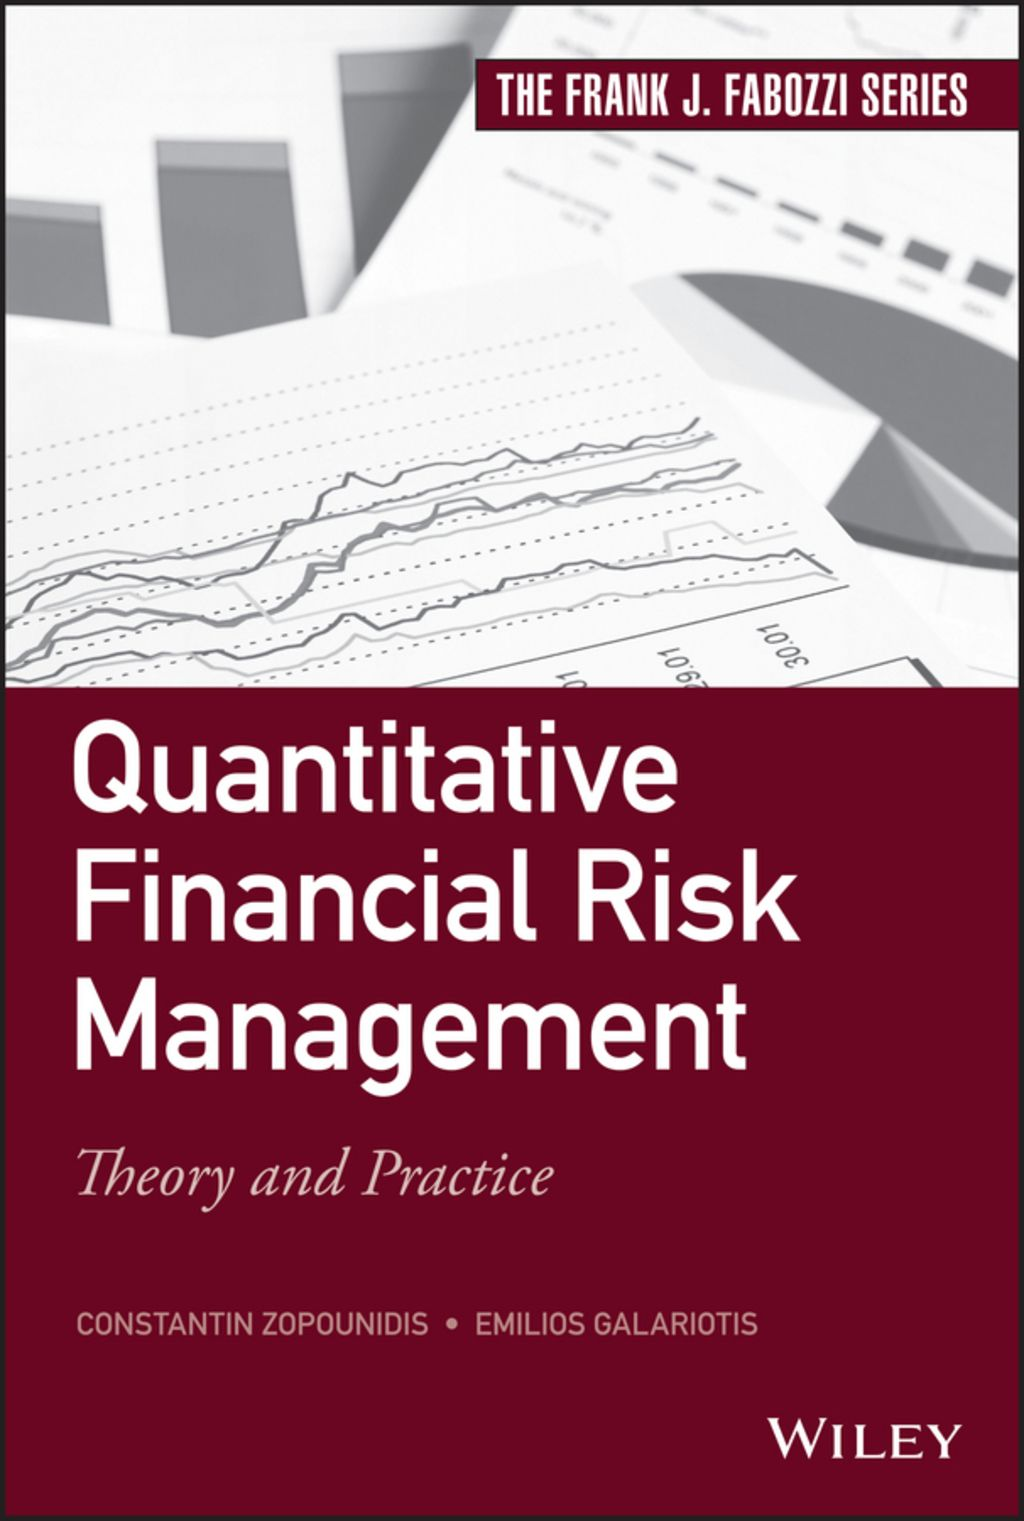 Quantitative Financial Risk Management Theory and